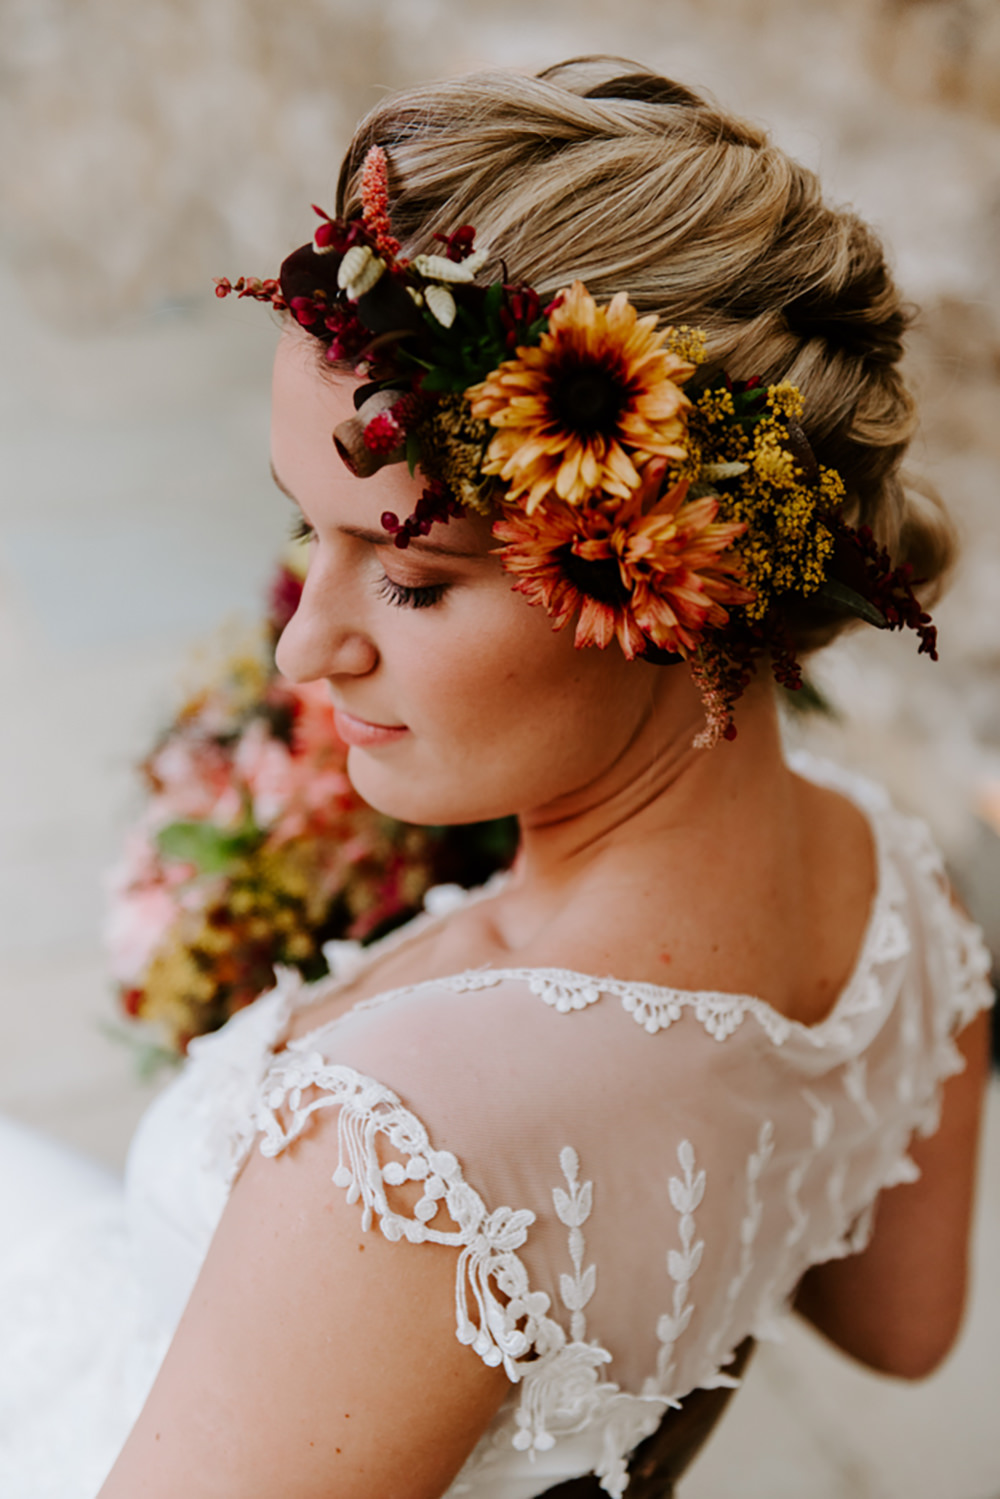 Bride Bridal Hair Flower Crown Halo Headdress Accessory Ethical Wedding Ideas Sadie Osborne Photography